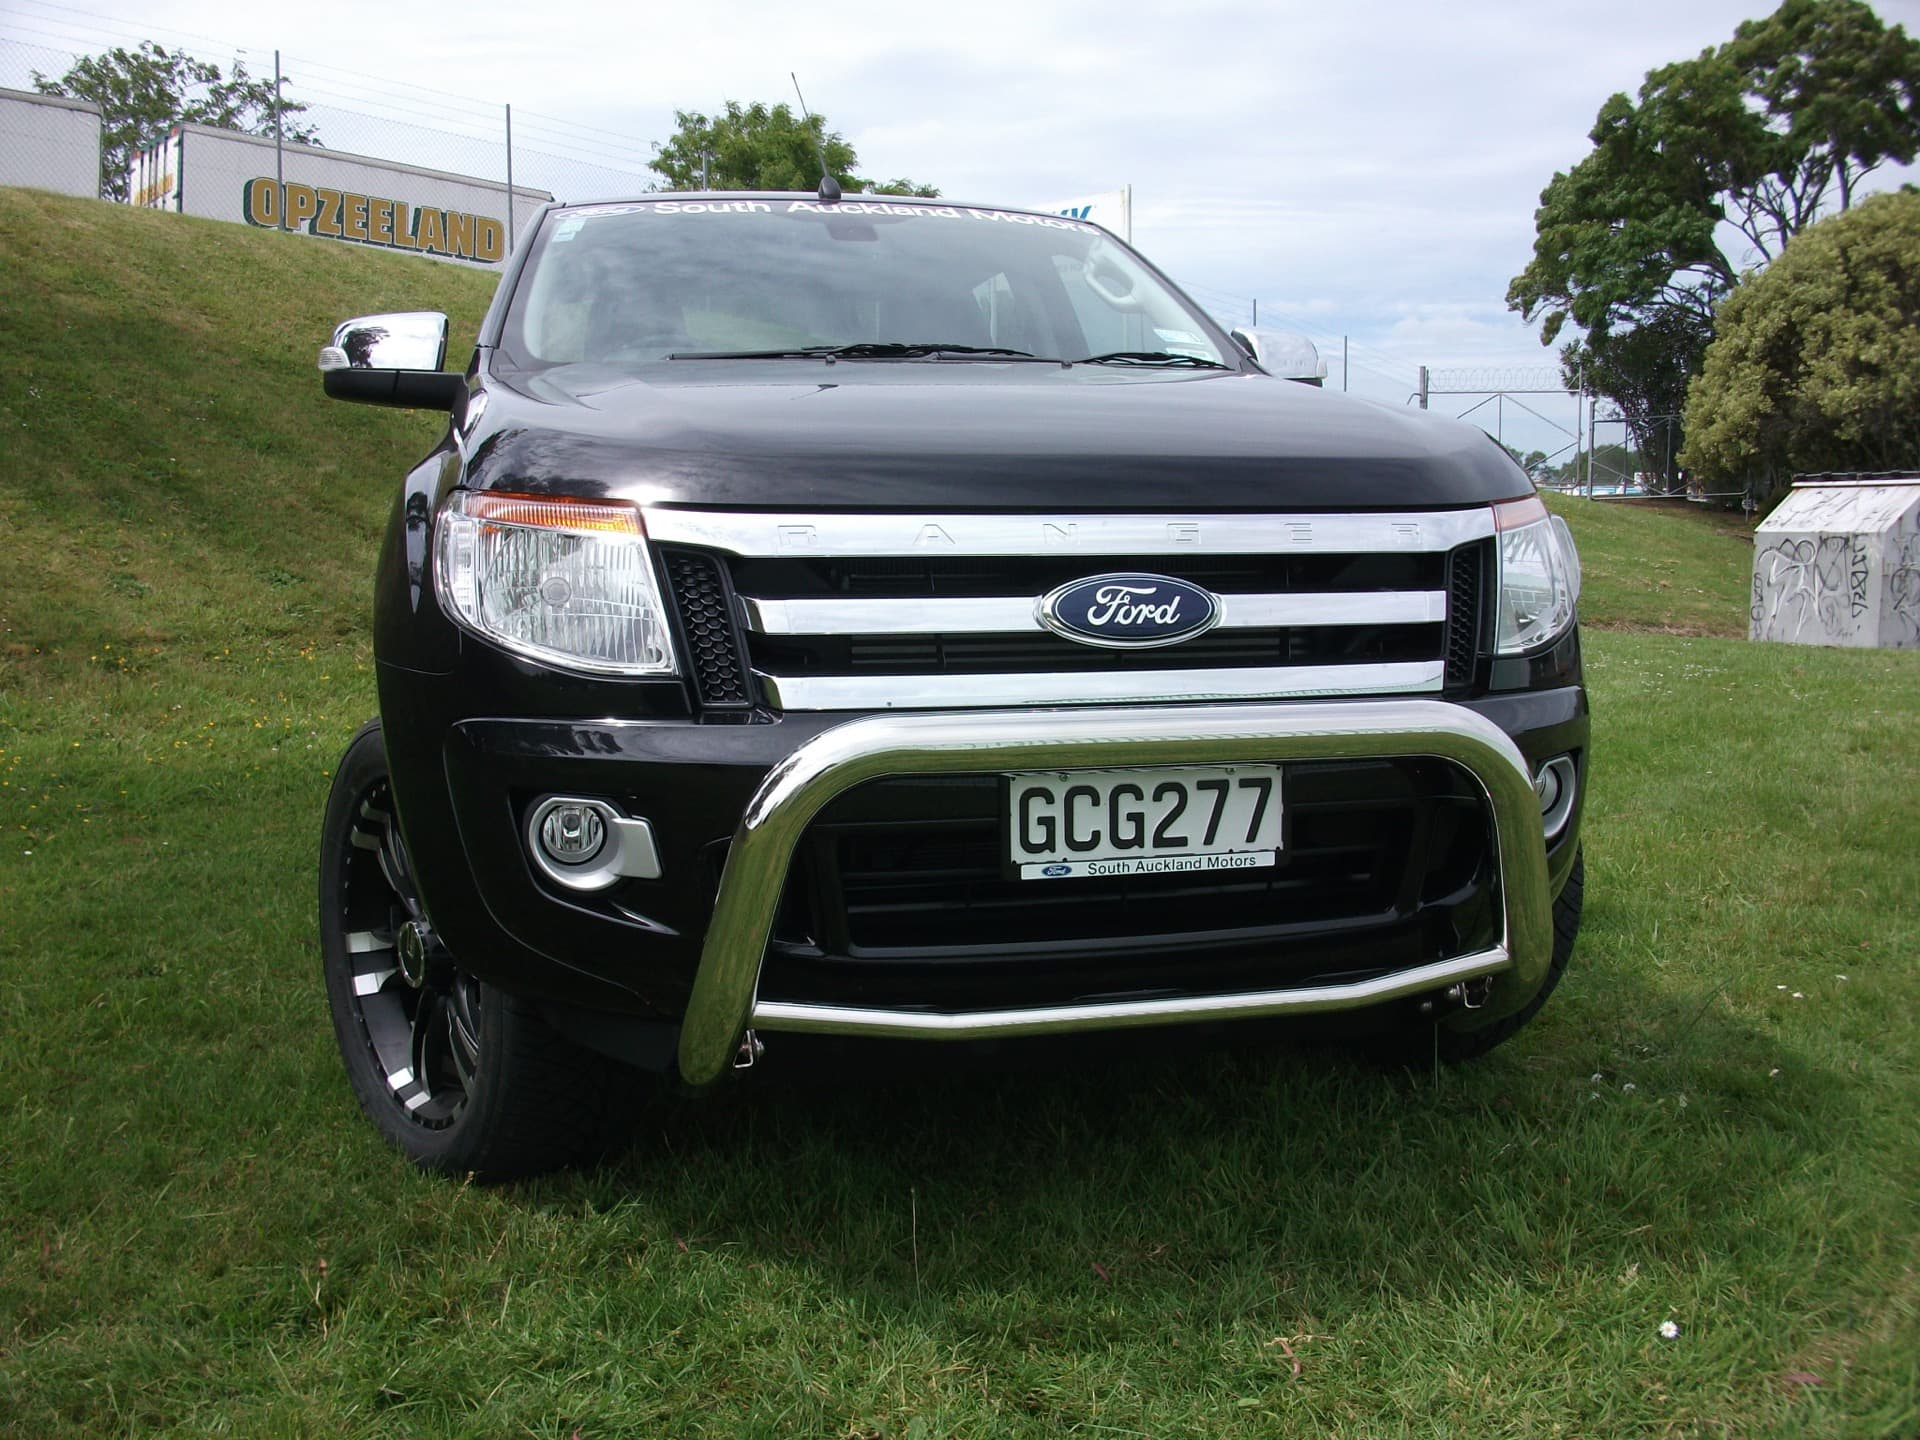 Ford ranger front nudge bar